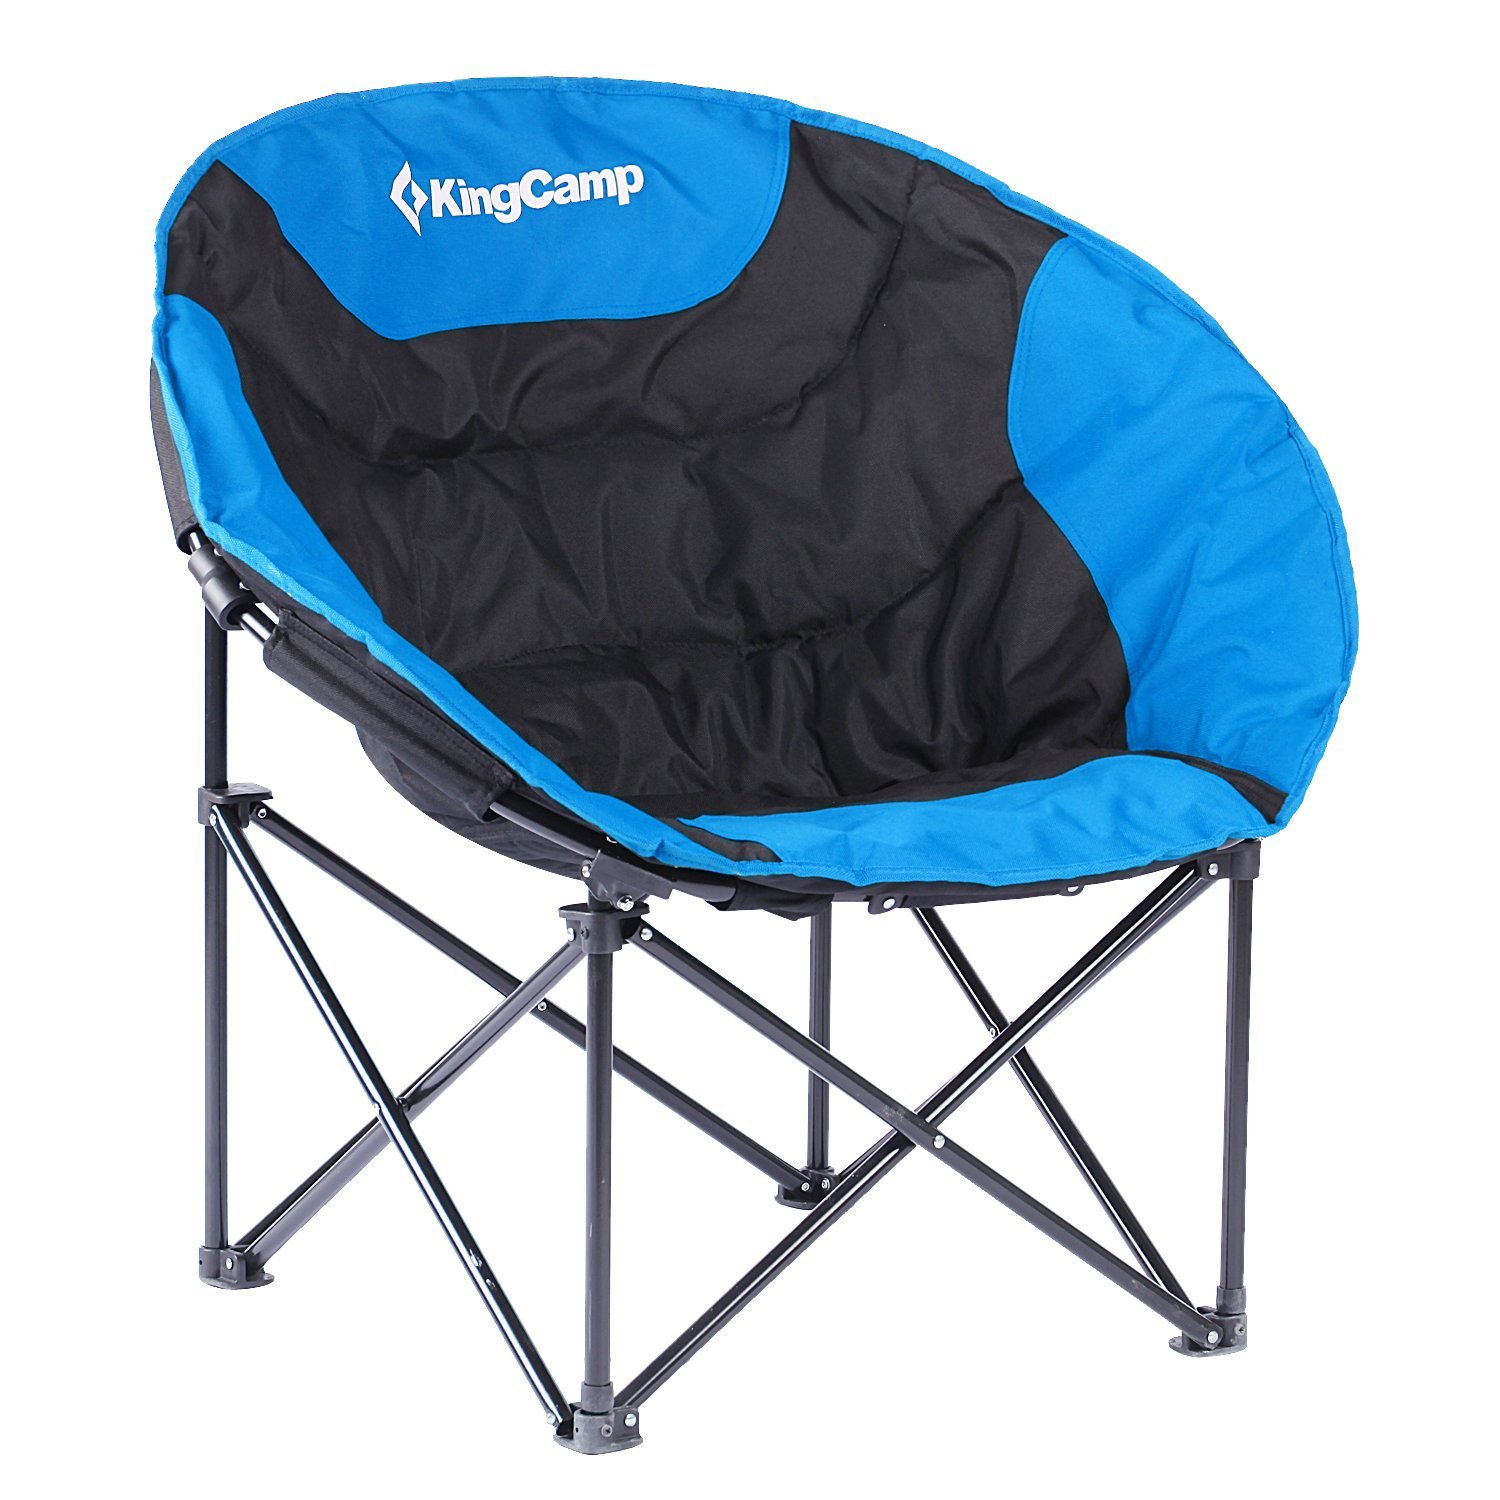 compact camping chair blue bay rum price 10 best ultimately comfortable chairs